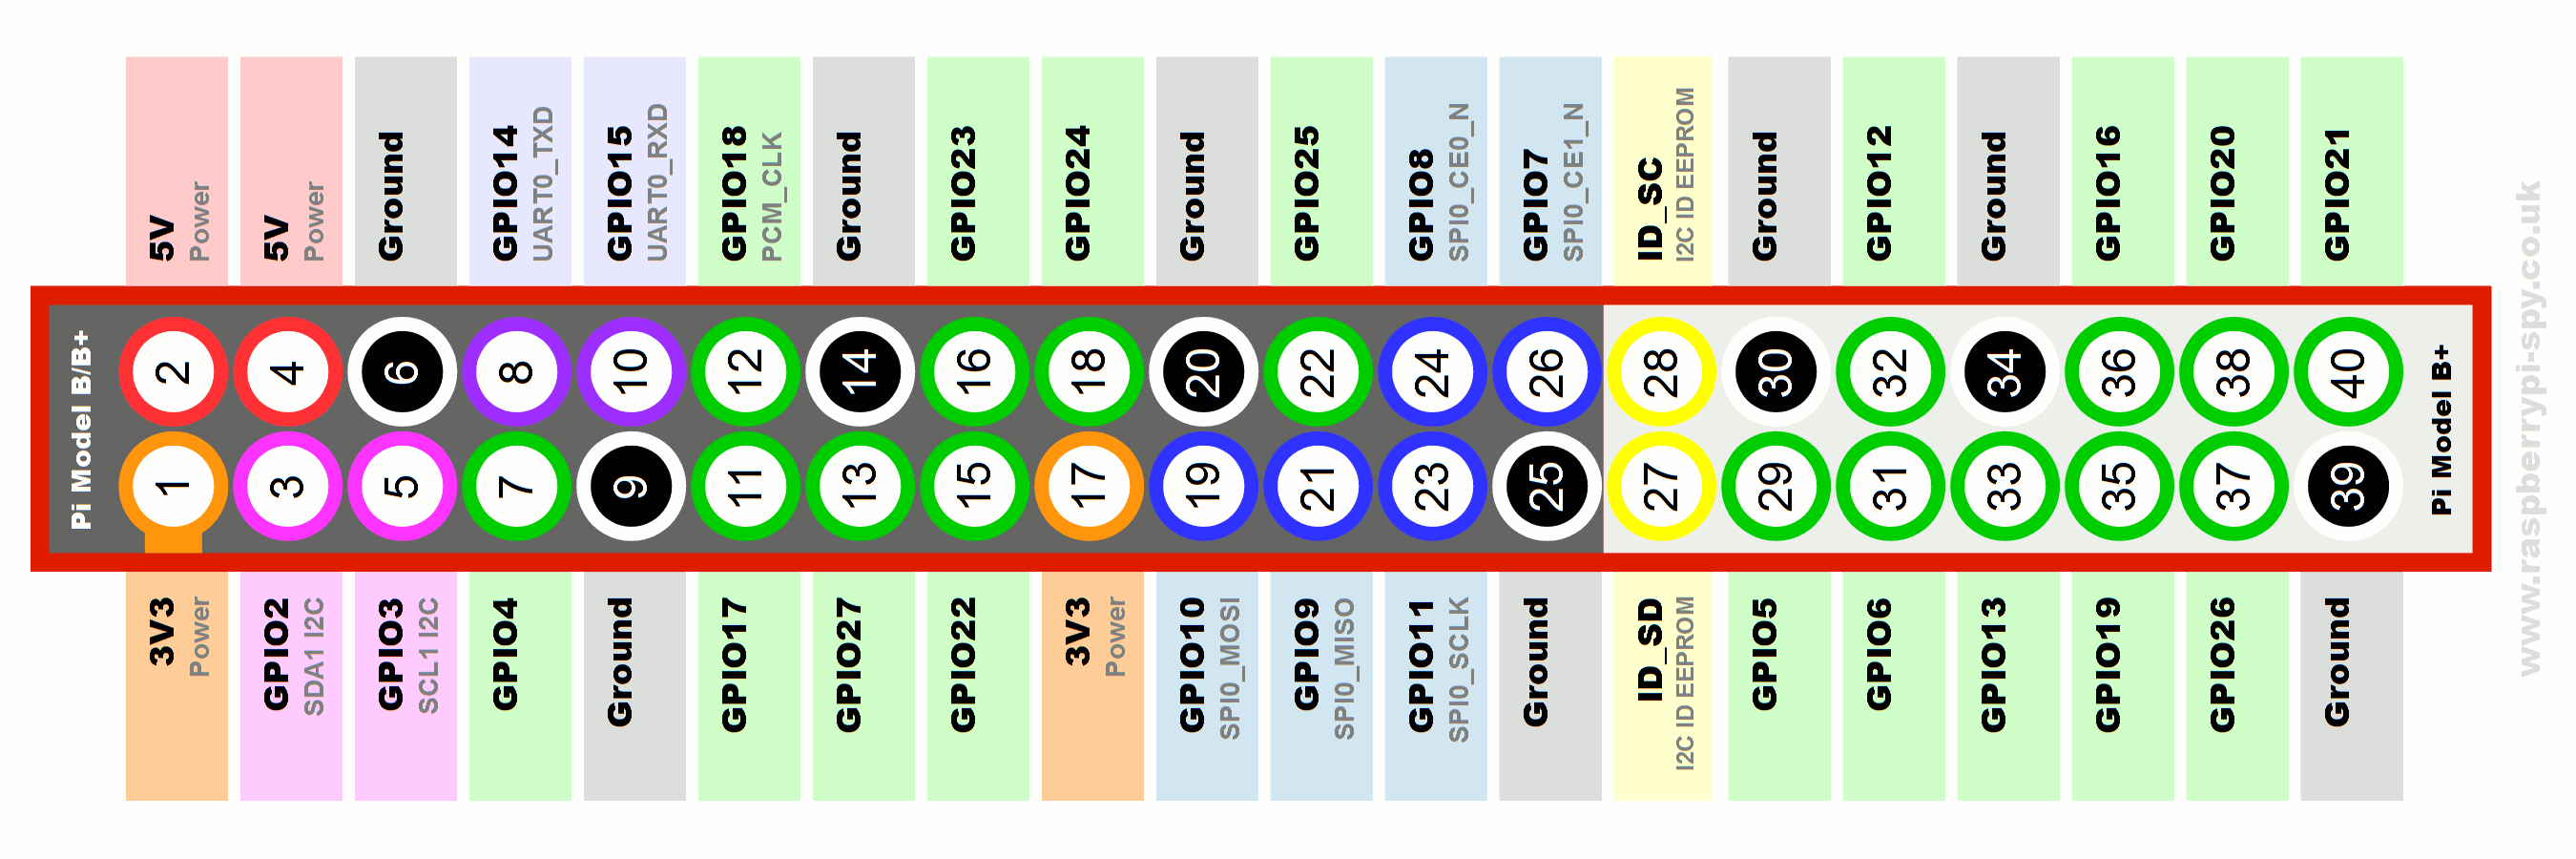 Raspberry-Pi-GPIO-Layout-Model-B-Plus-rotated-2700x900.png